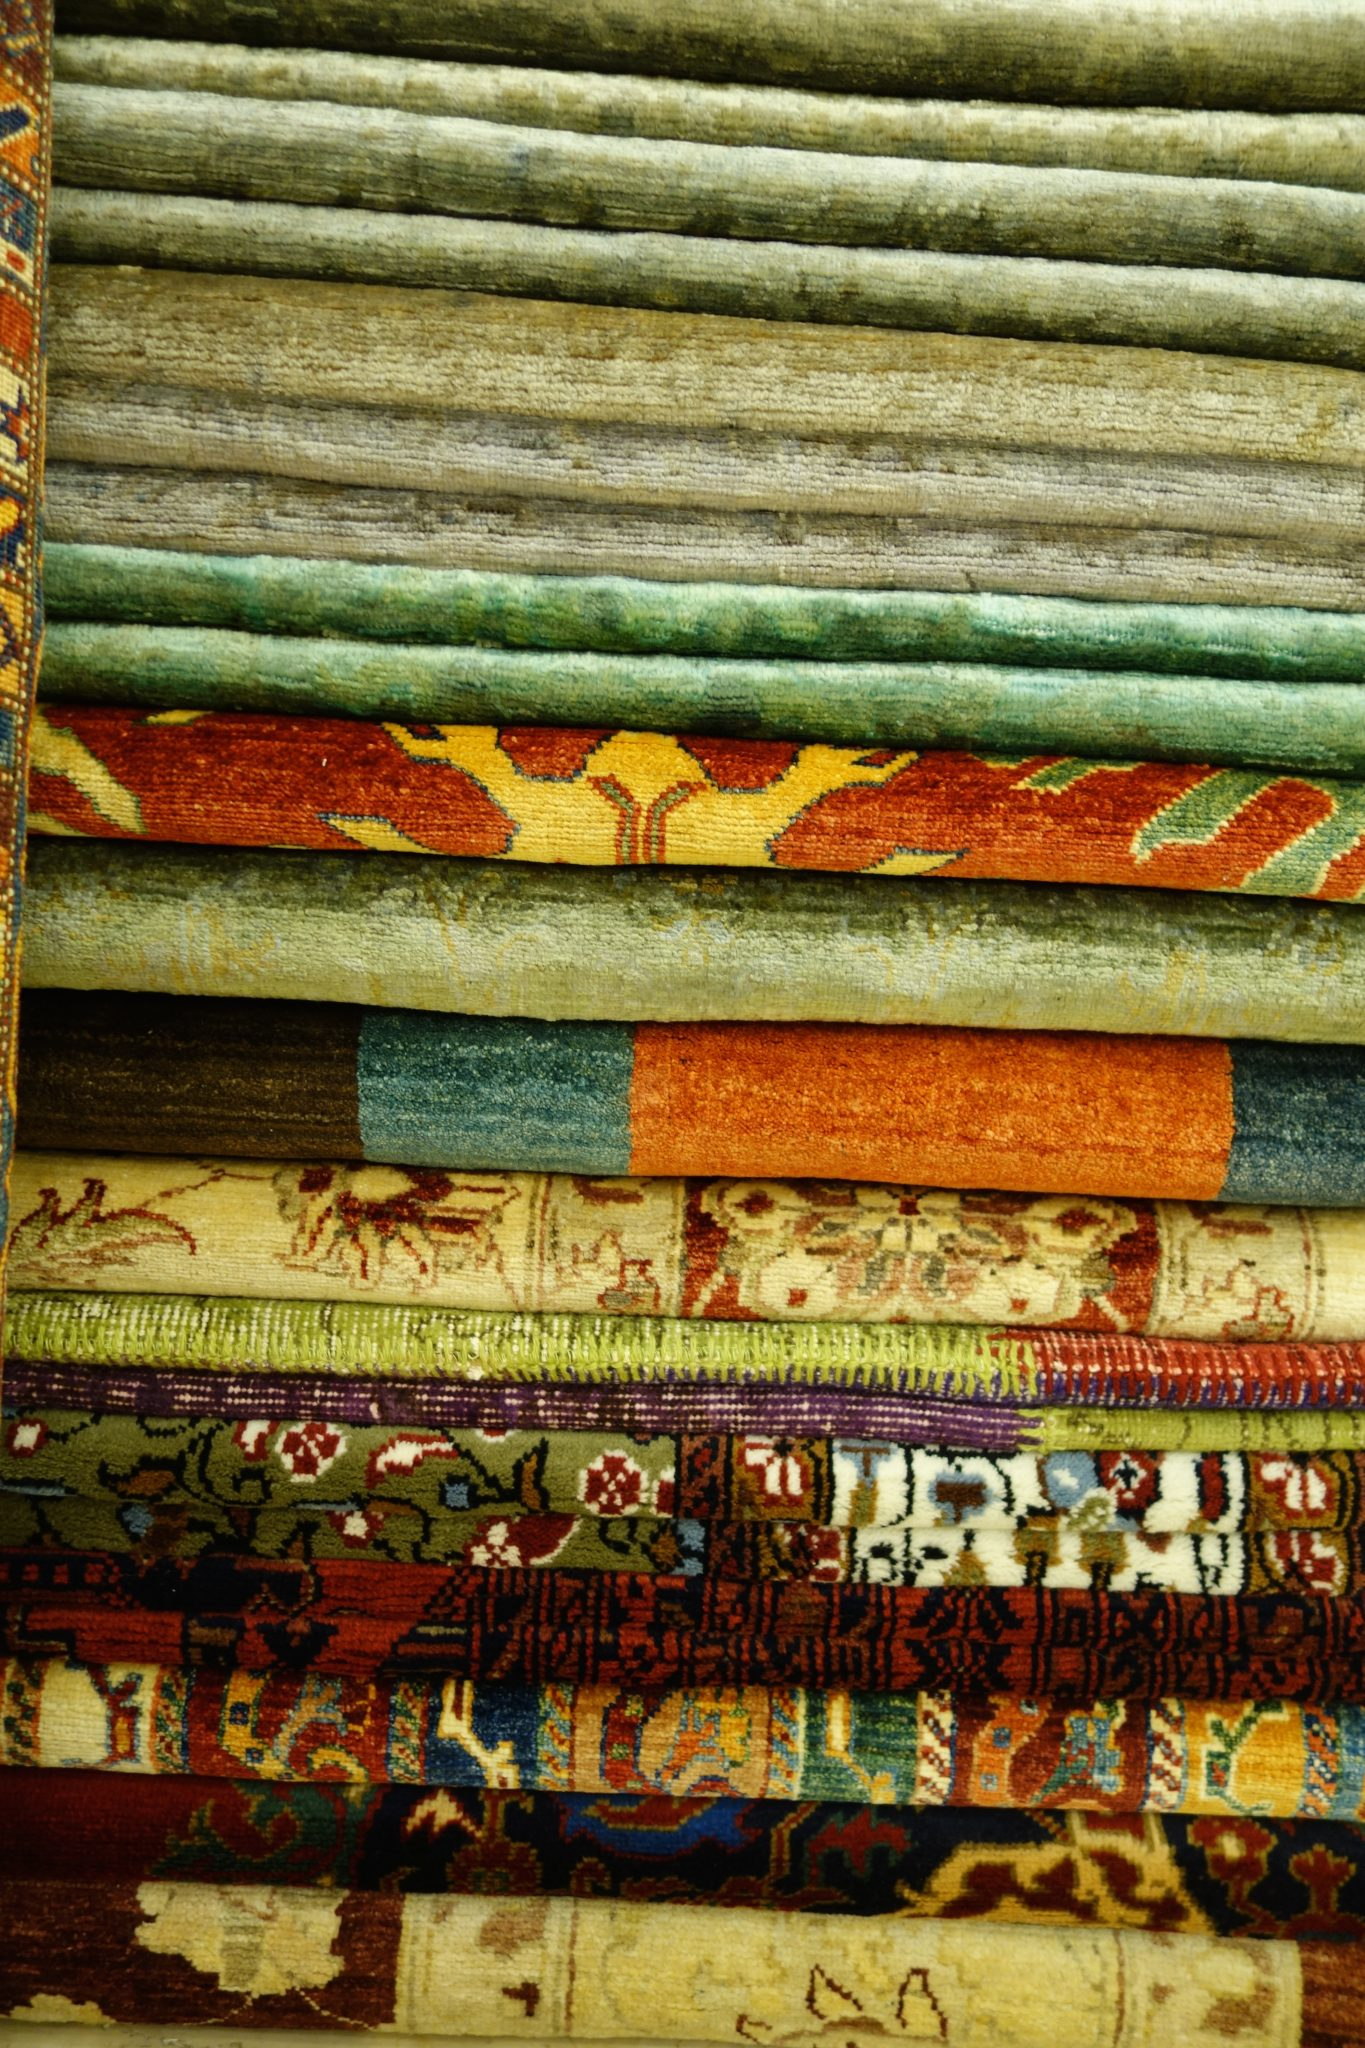 turkish carpets exploring handmade craft